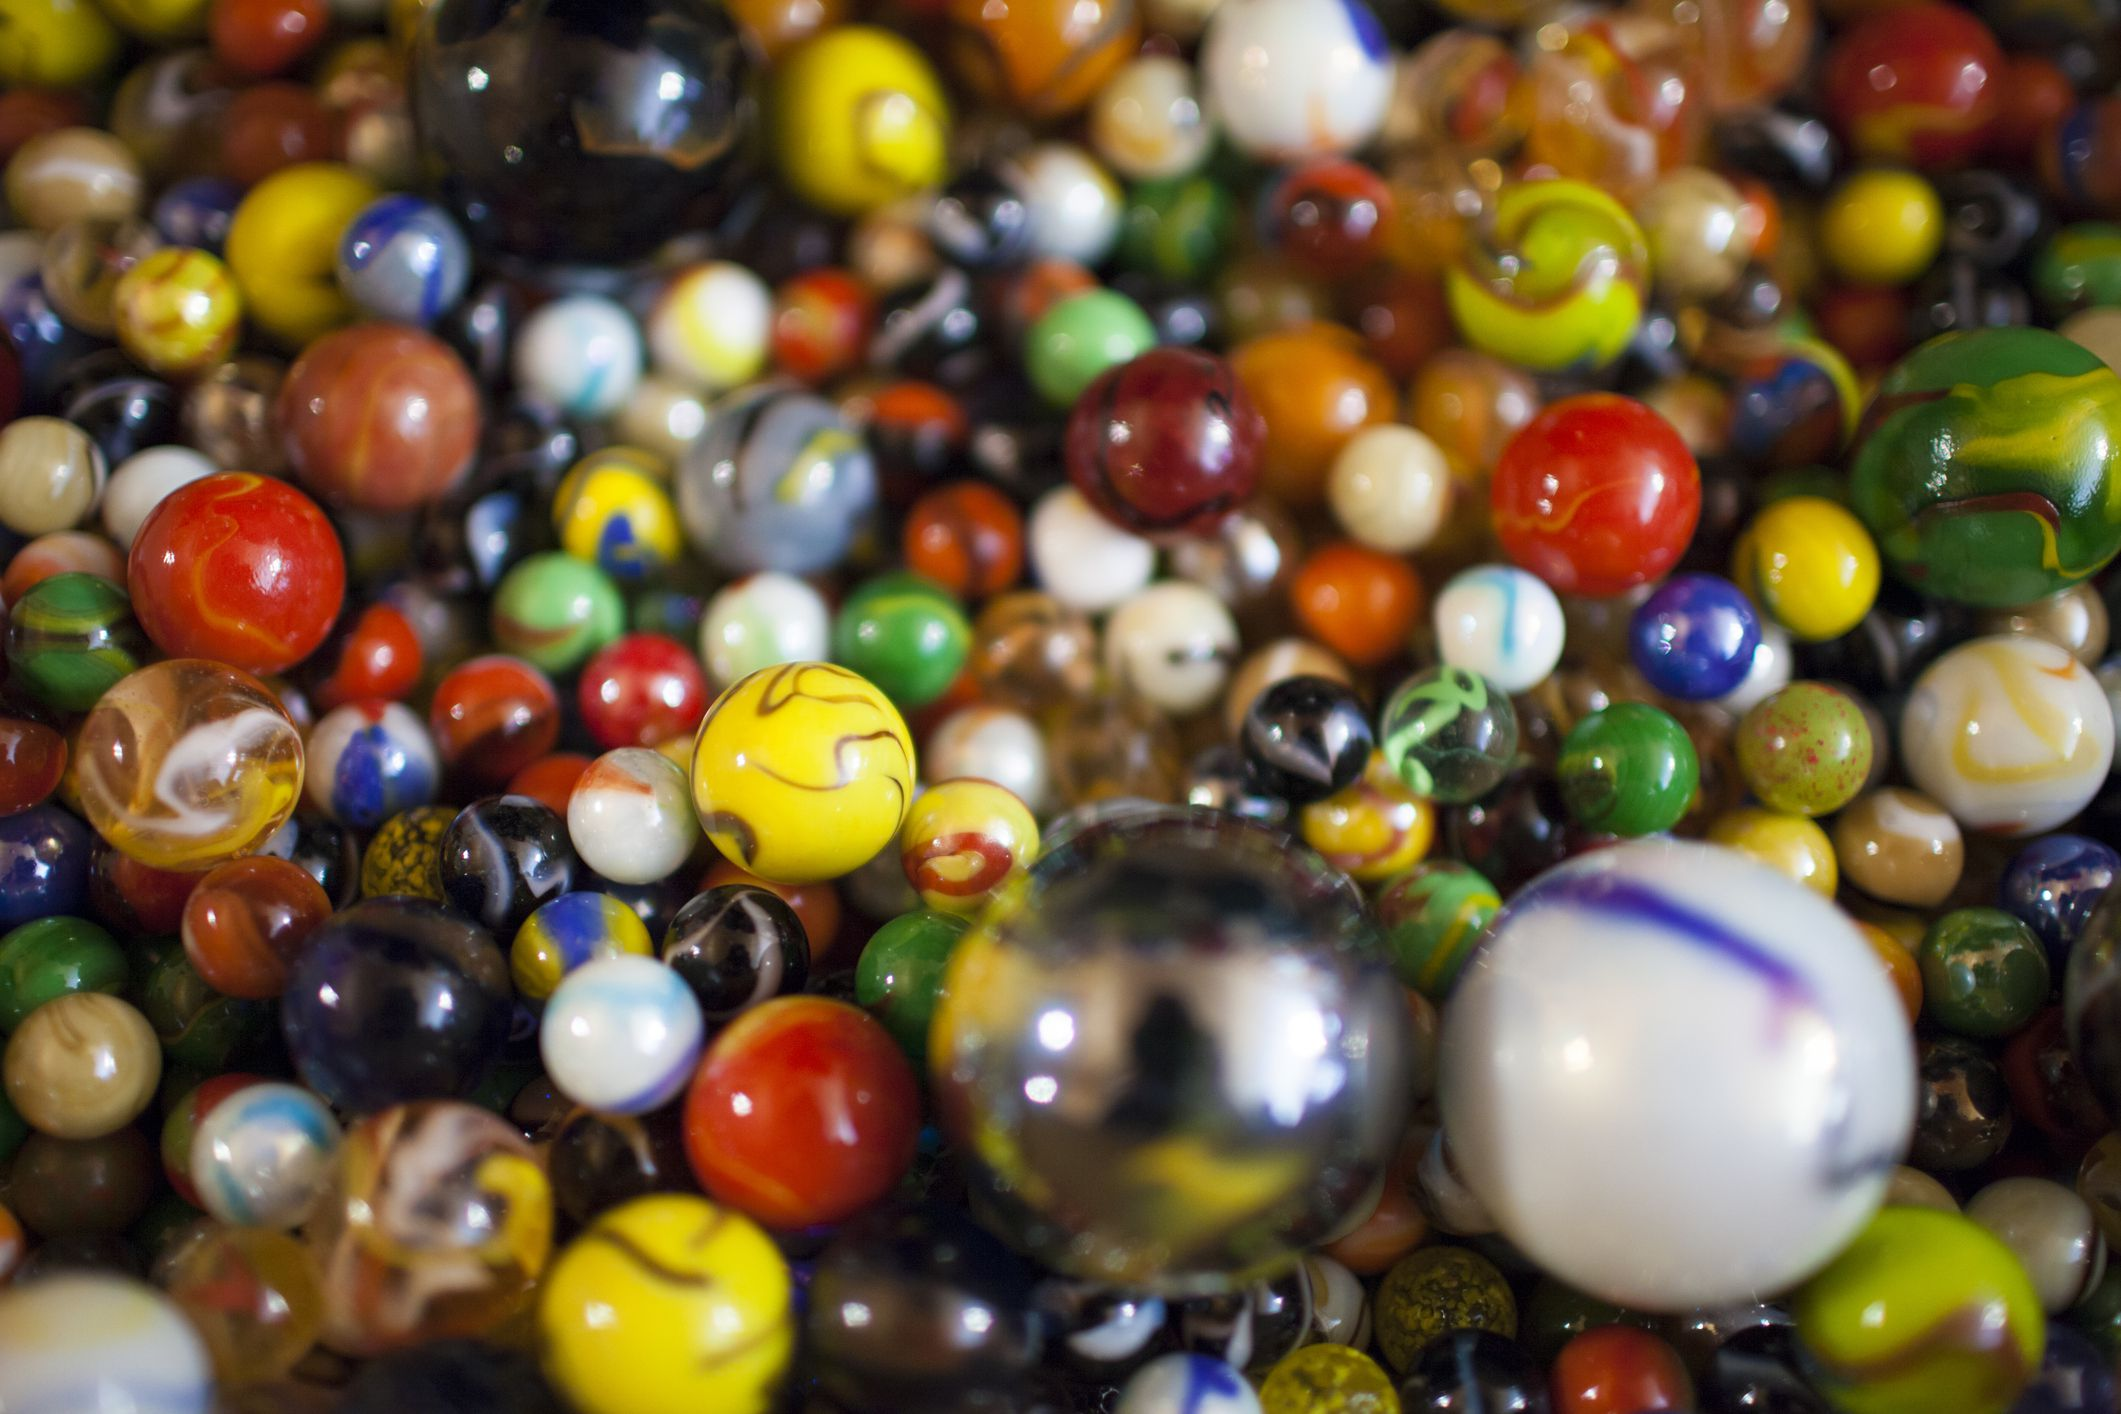 Marble Pictures And Prices Collecting Marbles